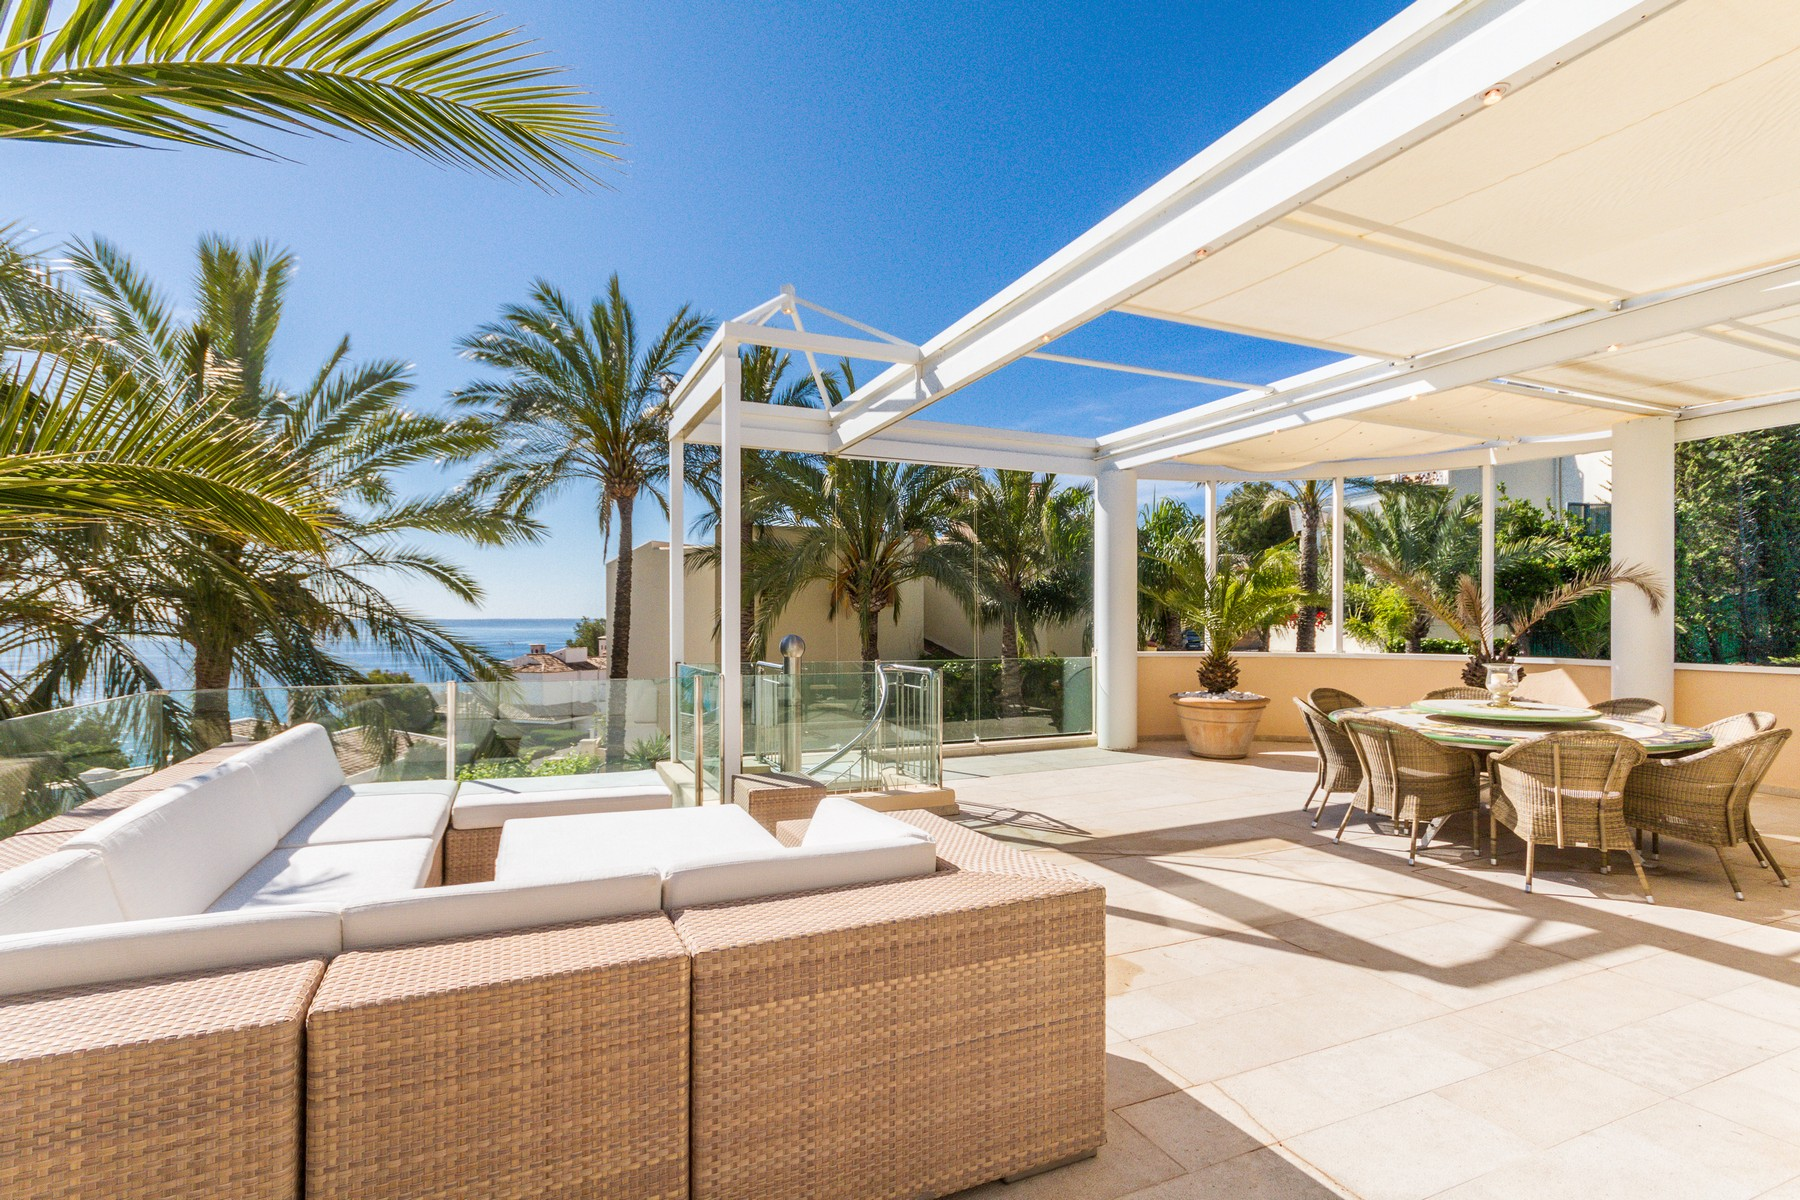 Casa Unifamiliar por un Venta en Sea view Villa in Cas Catalá with tennis court Bendinat, Mallorca 07181 España